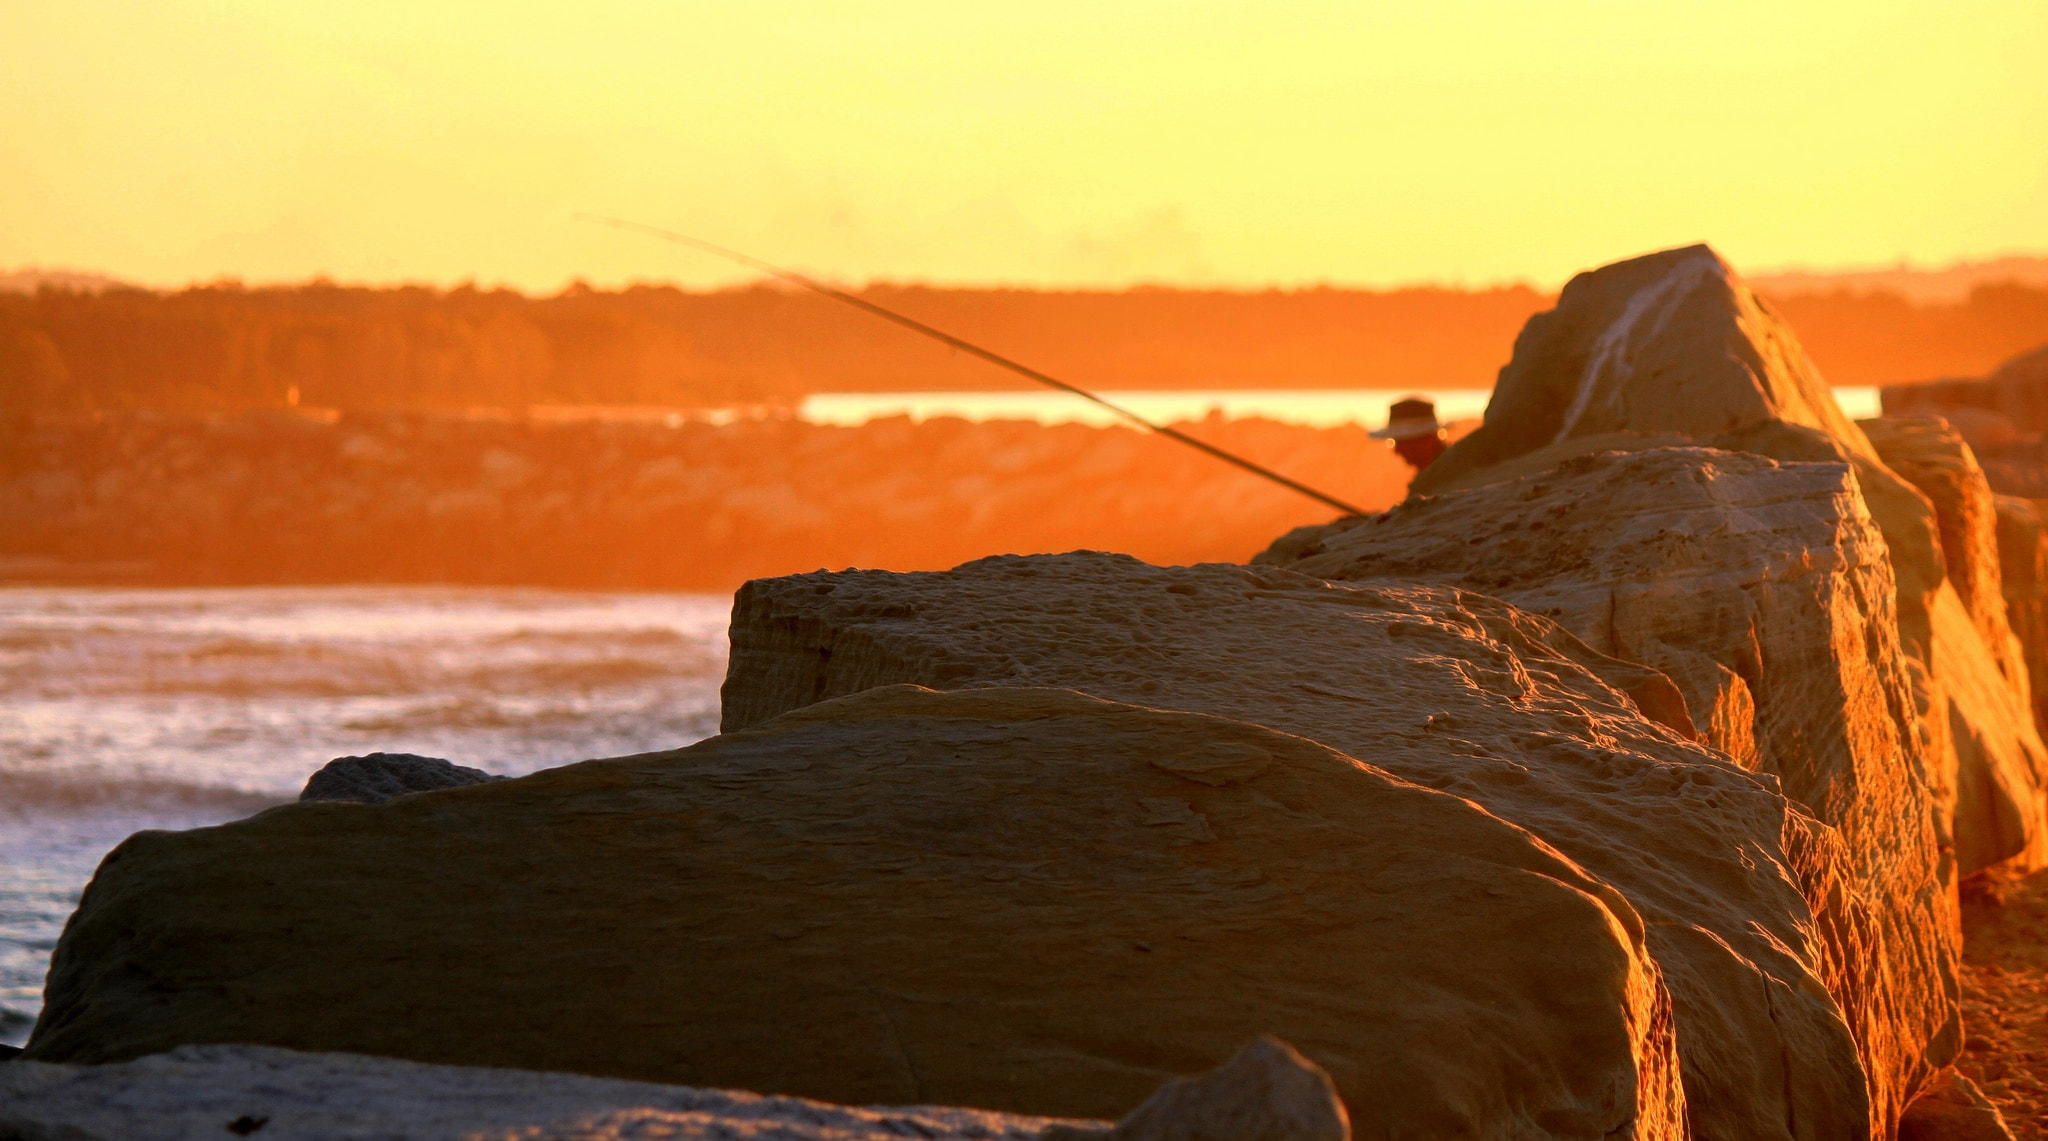 Sunset Fishing at Yamba © Flickr / Graham Cook